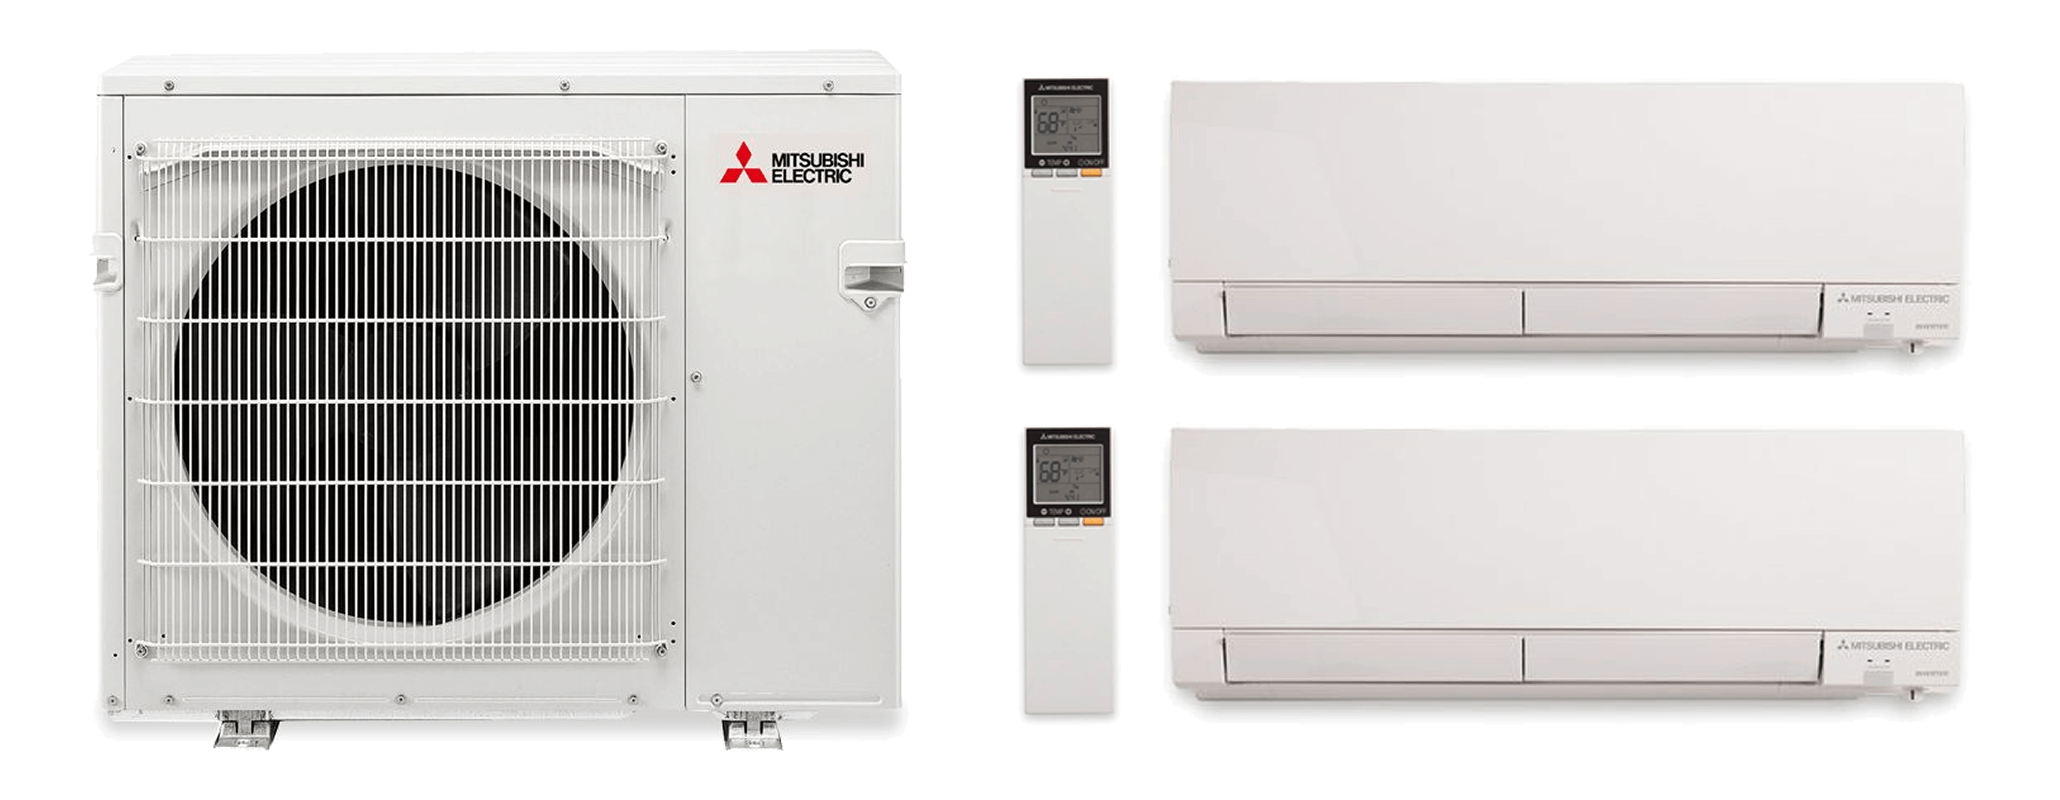 Mitsubishi Split Ductless Air Conditioner Heat Pump 2-in-1